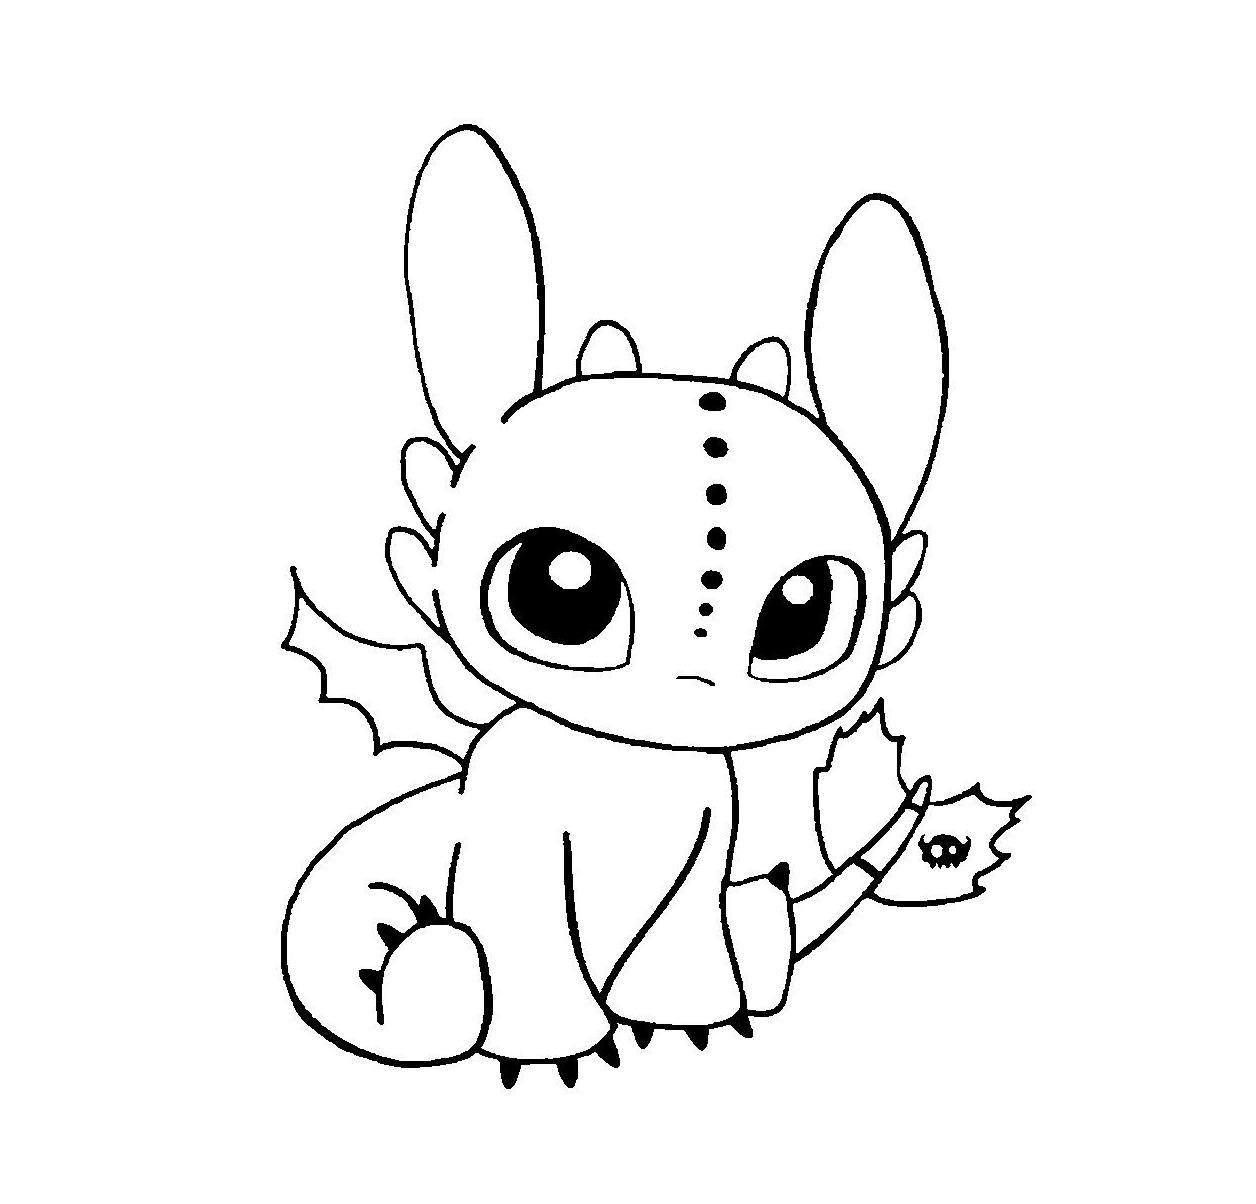 Toothless Baby Dragon Coloring Page Cute Toothless Dragon Drawing